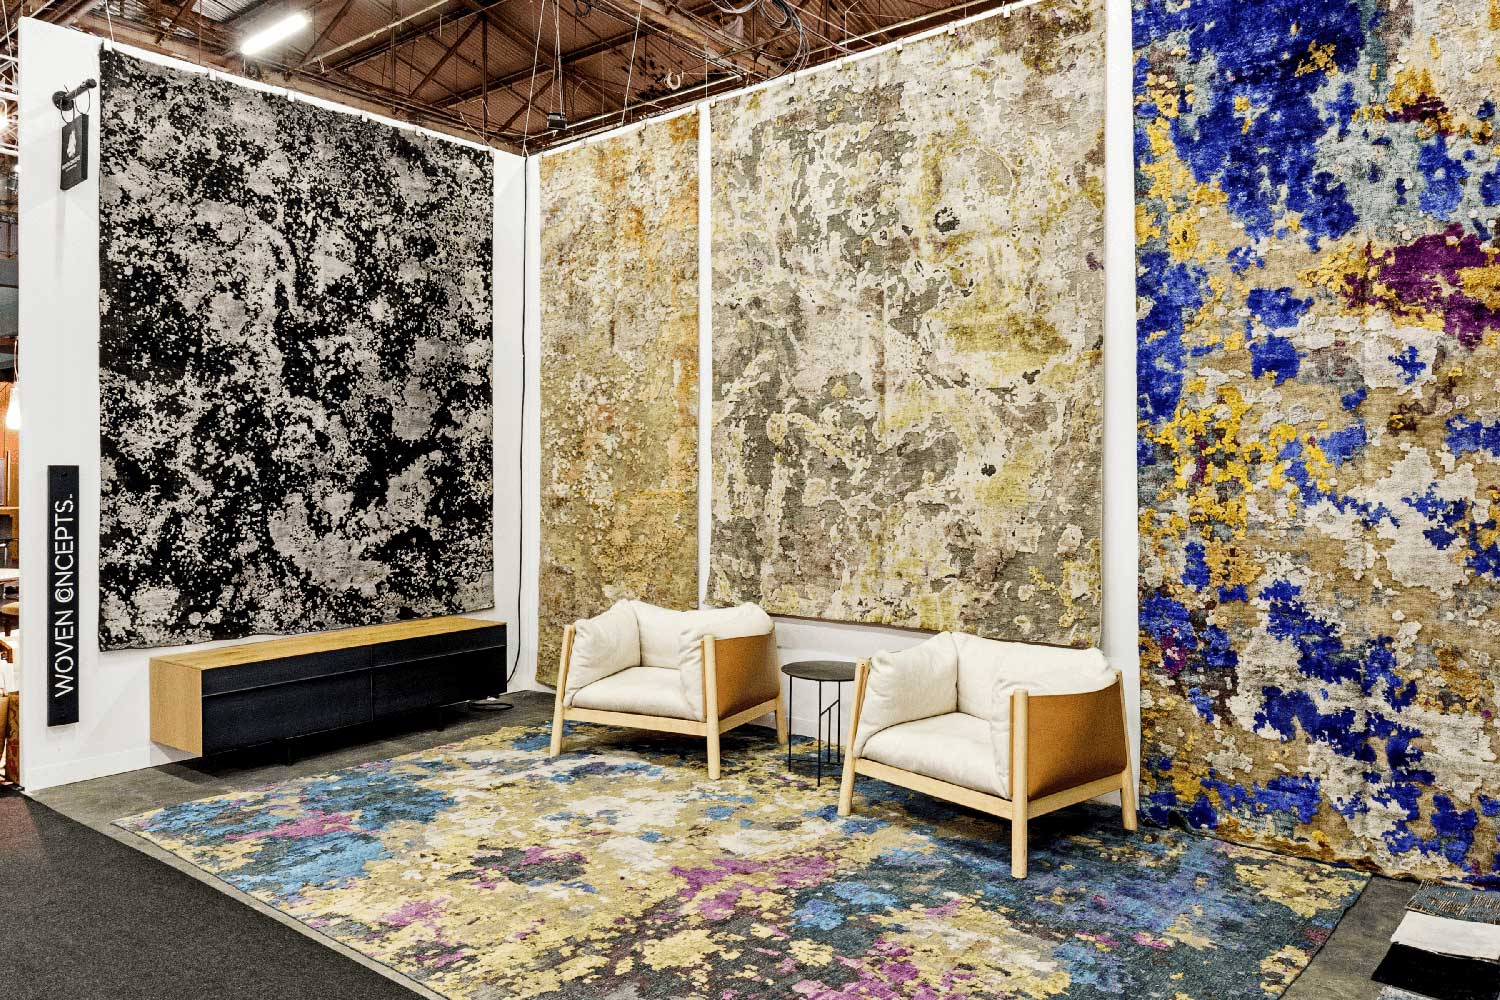 Our Top Picks From The Architectural Digest Design Show